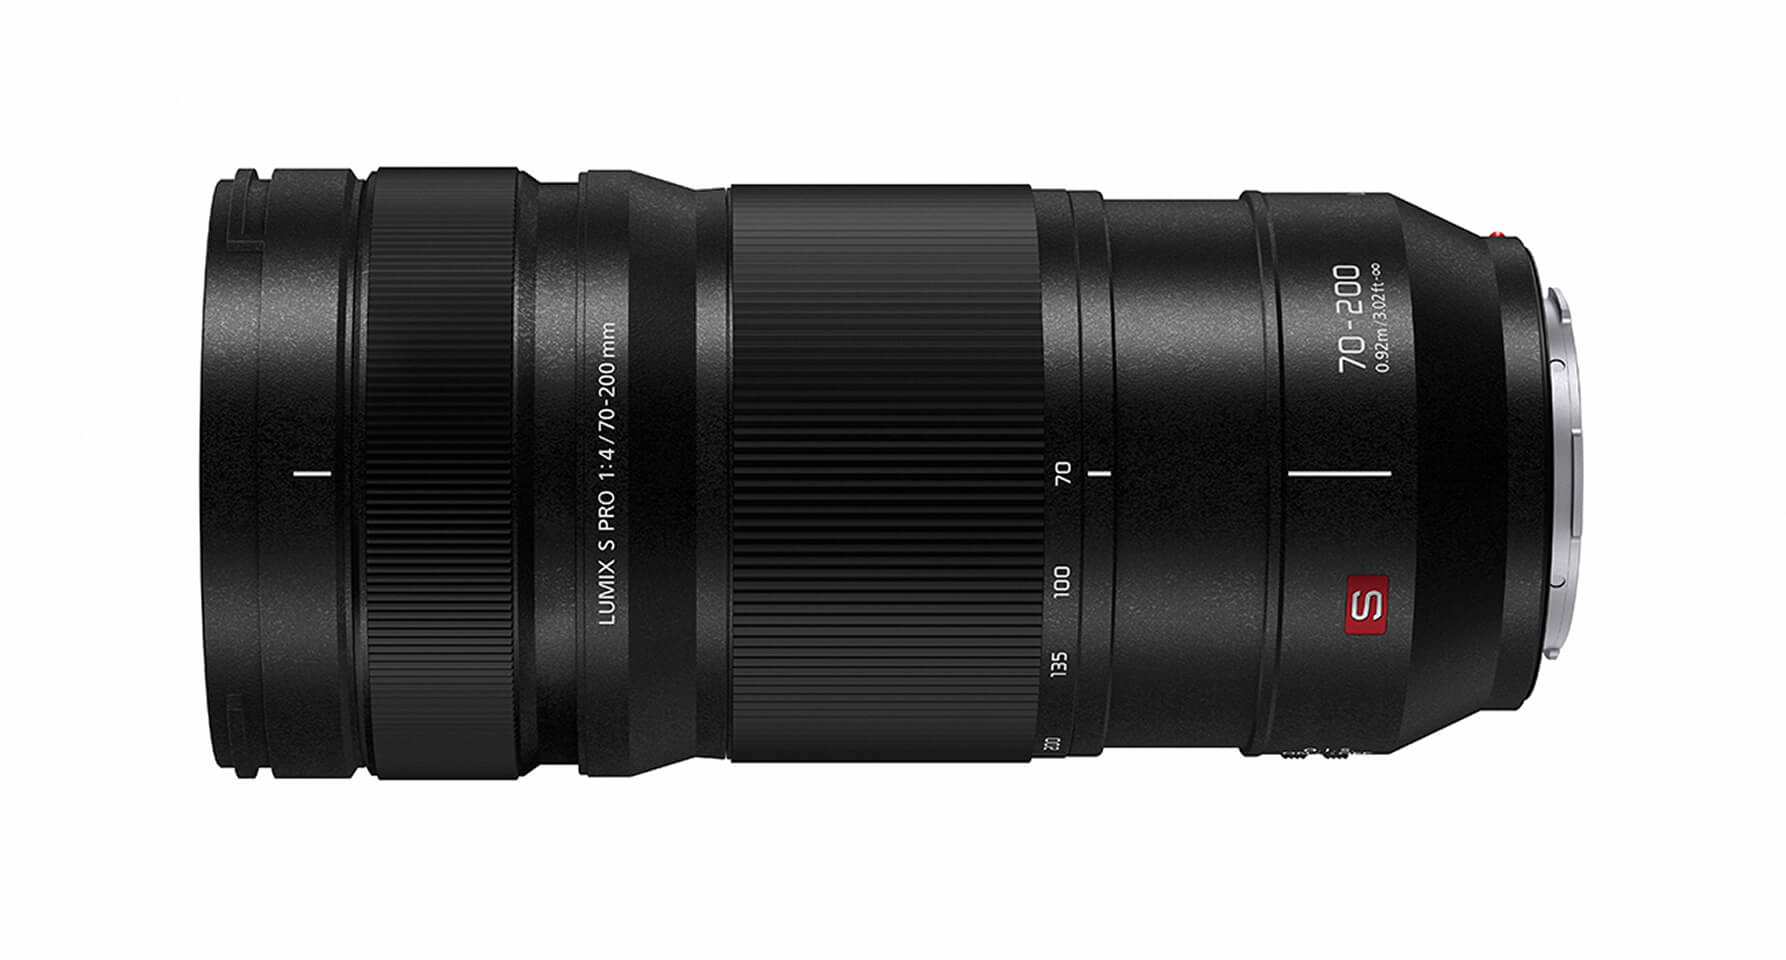 LUMIX S PRO 70-200mm F4 L-Mount Telephoto Lens, LEICA Certified - S-R70200